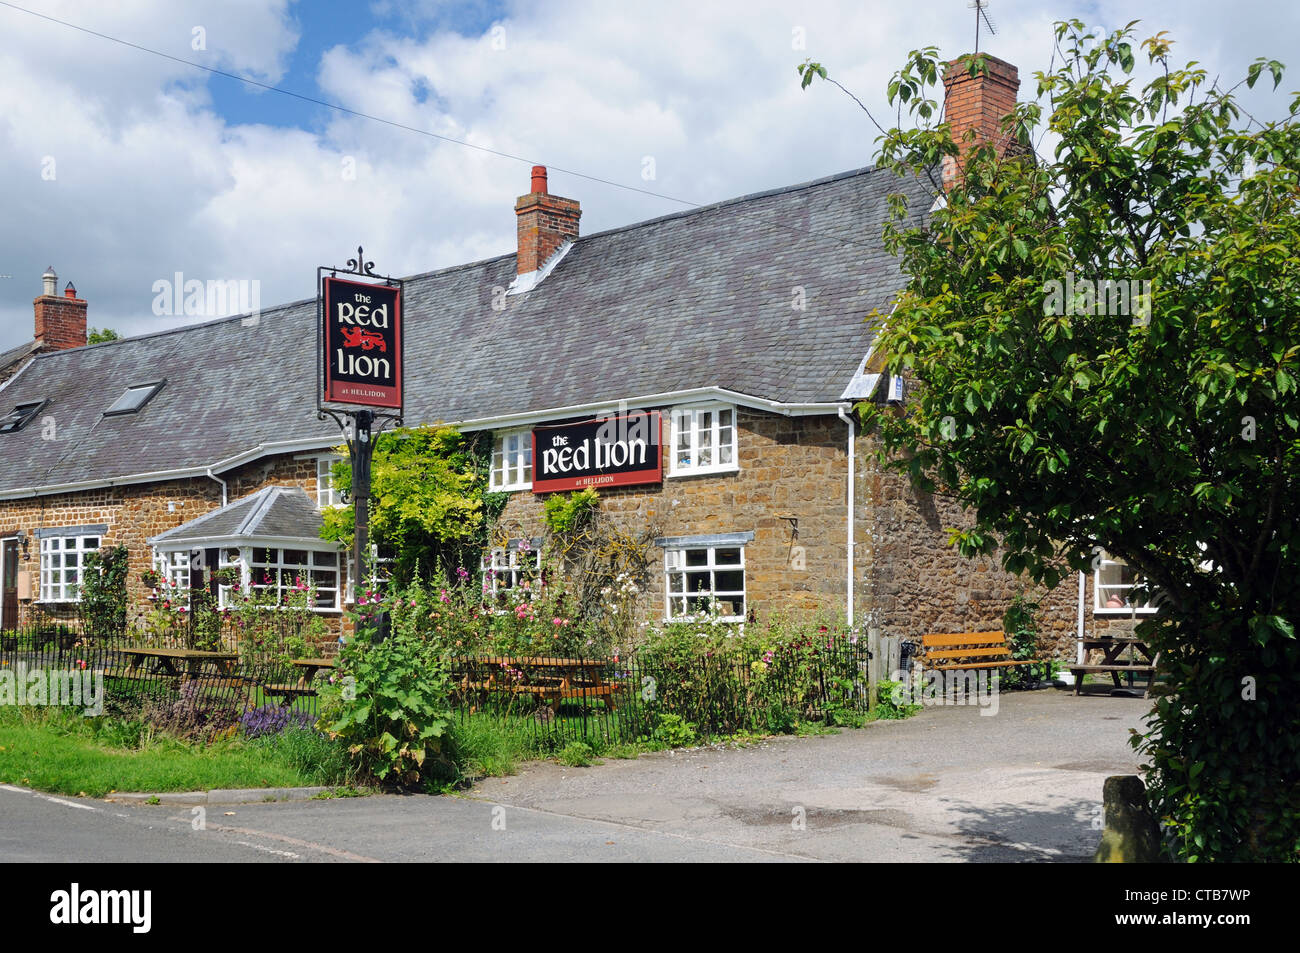 The Red Lion, in Hellidon, Northamptonshire, England - Stock Image